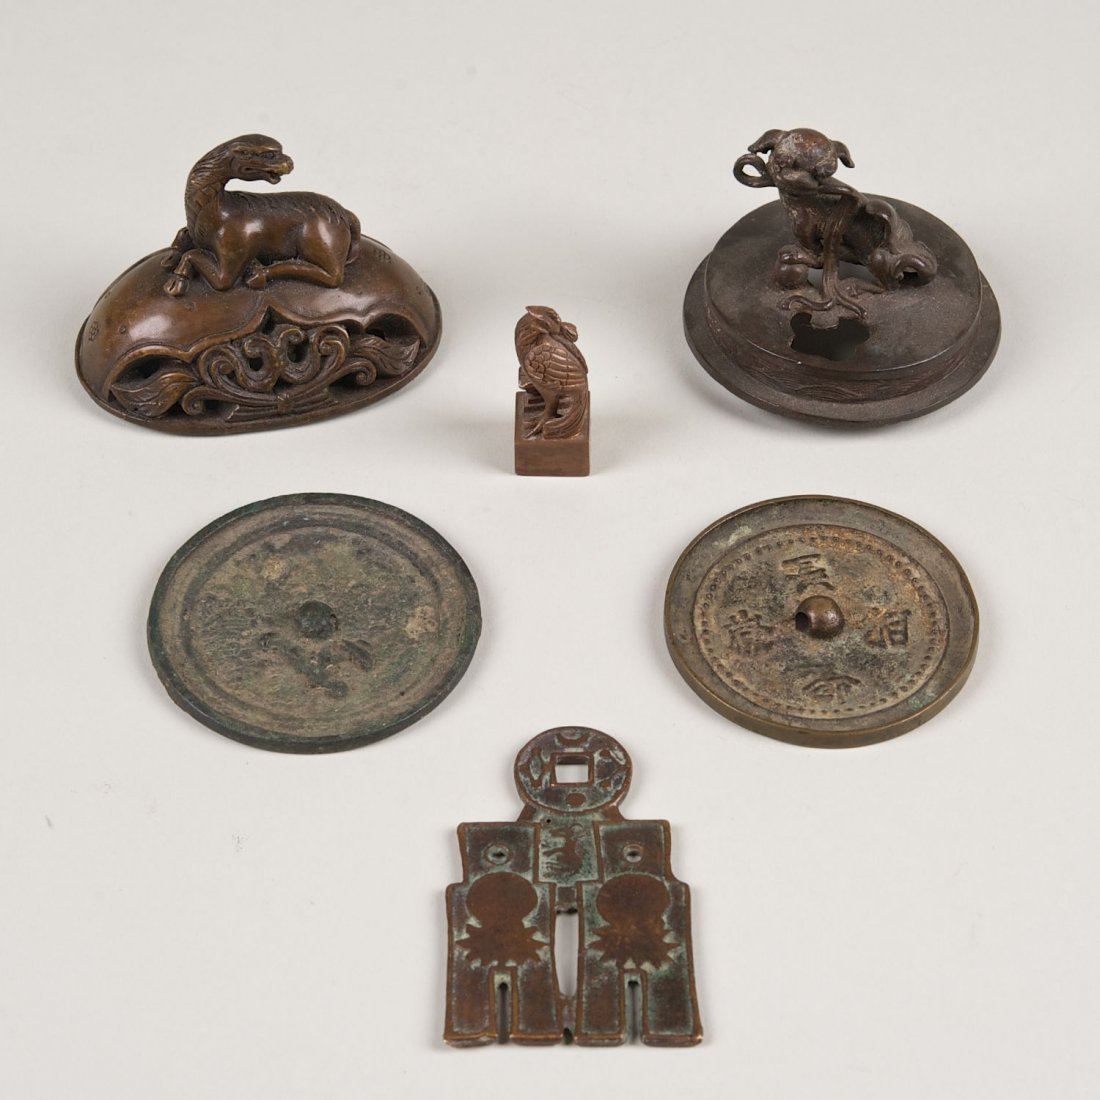 (6) Chinese ancient and patinated bronze artifacts